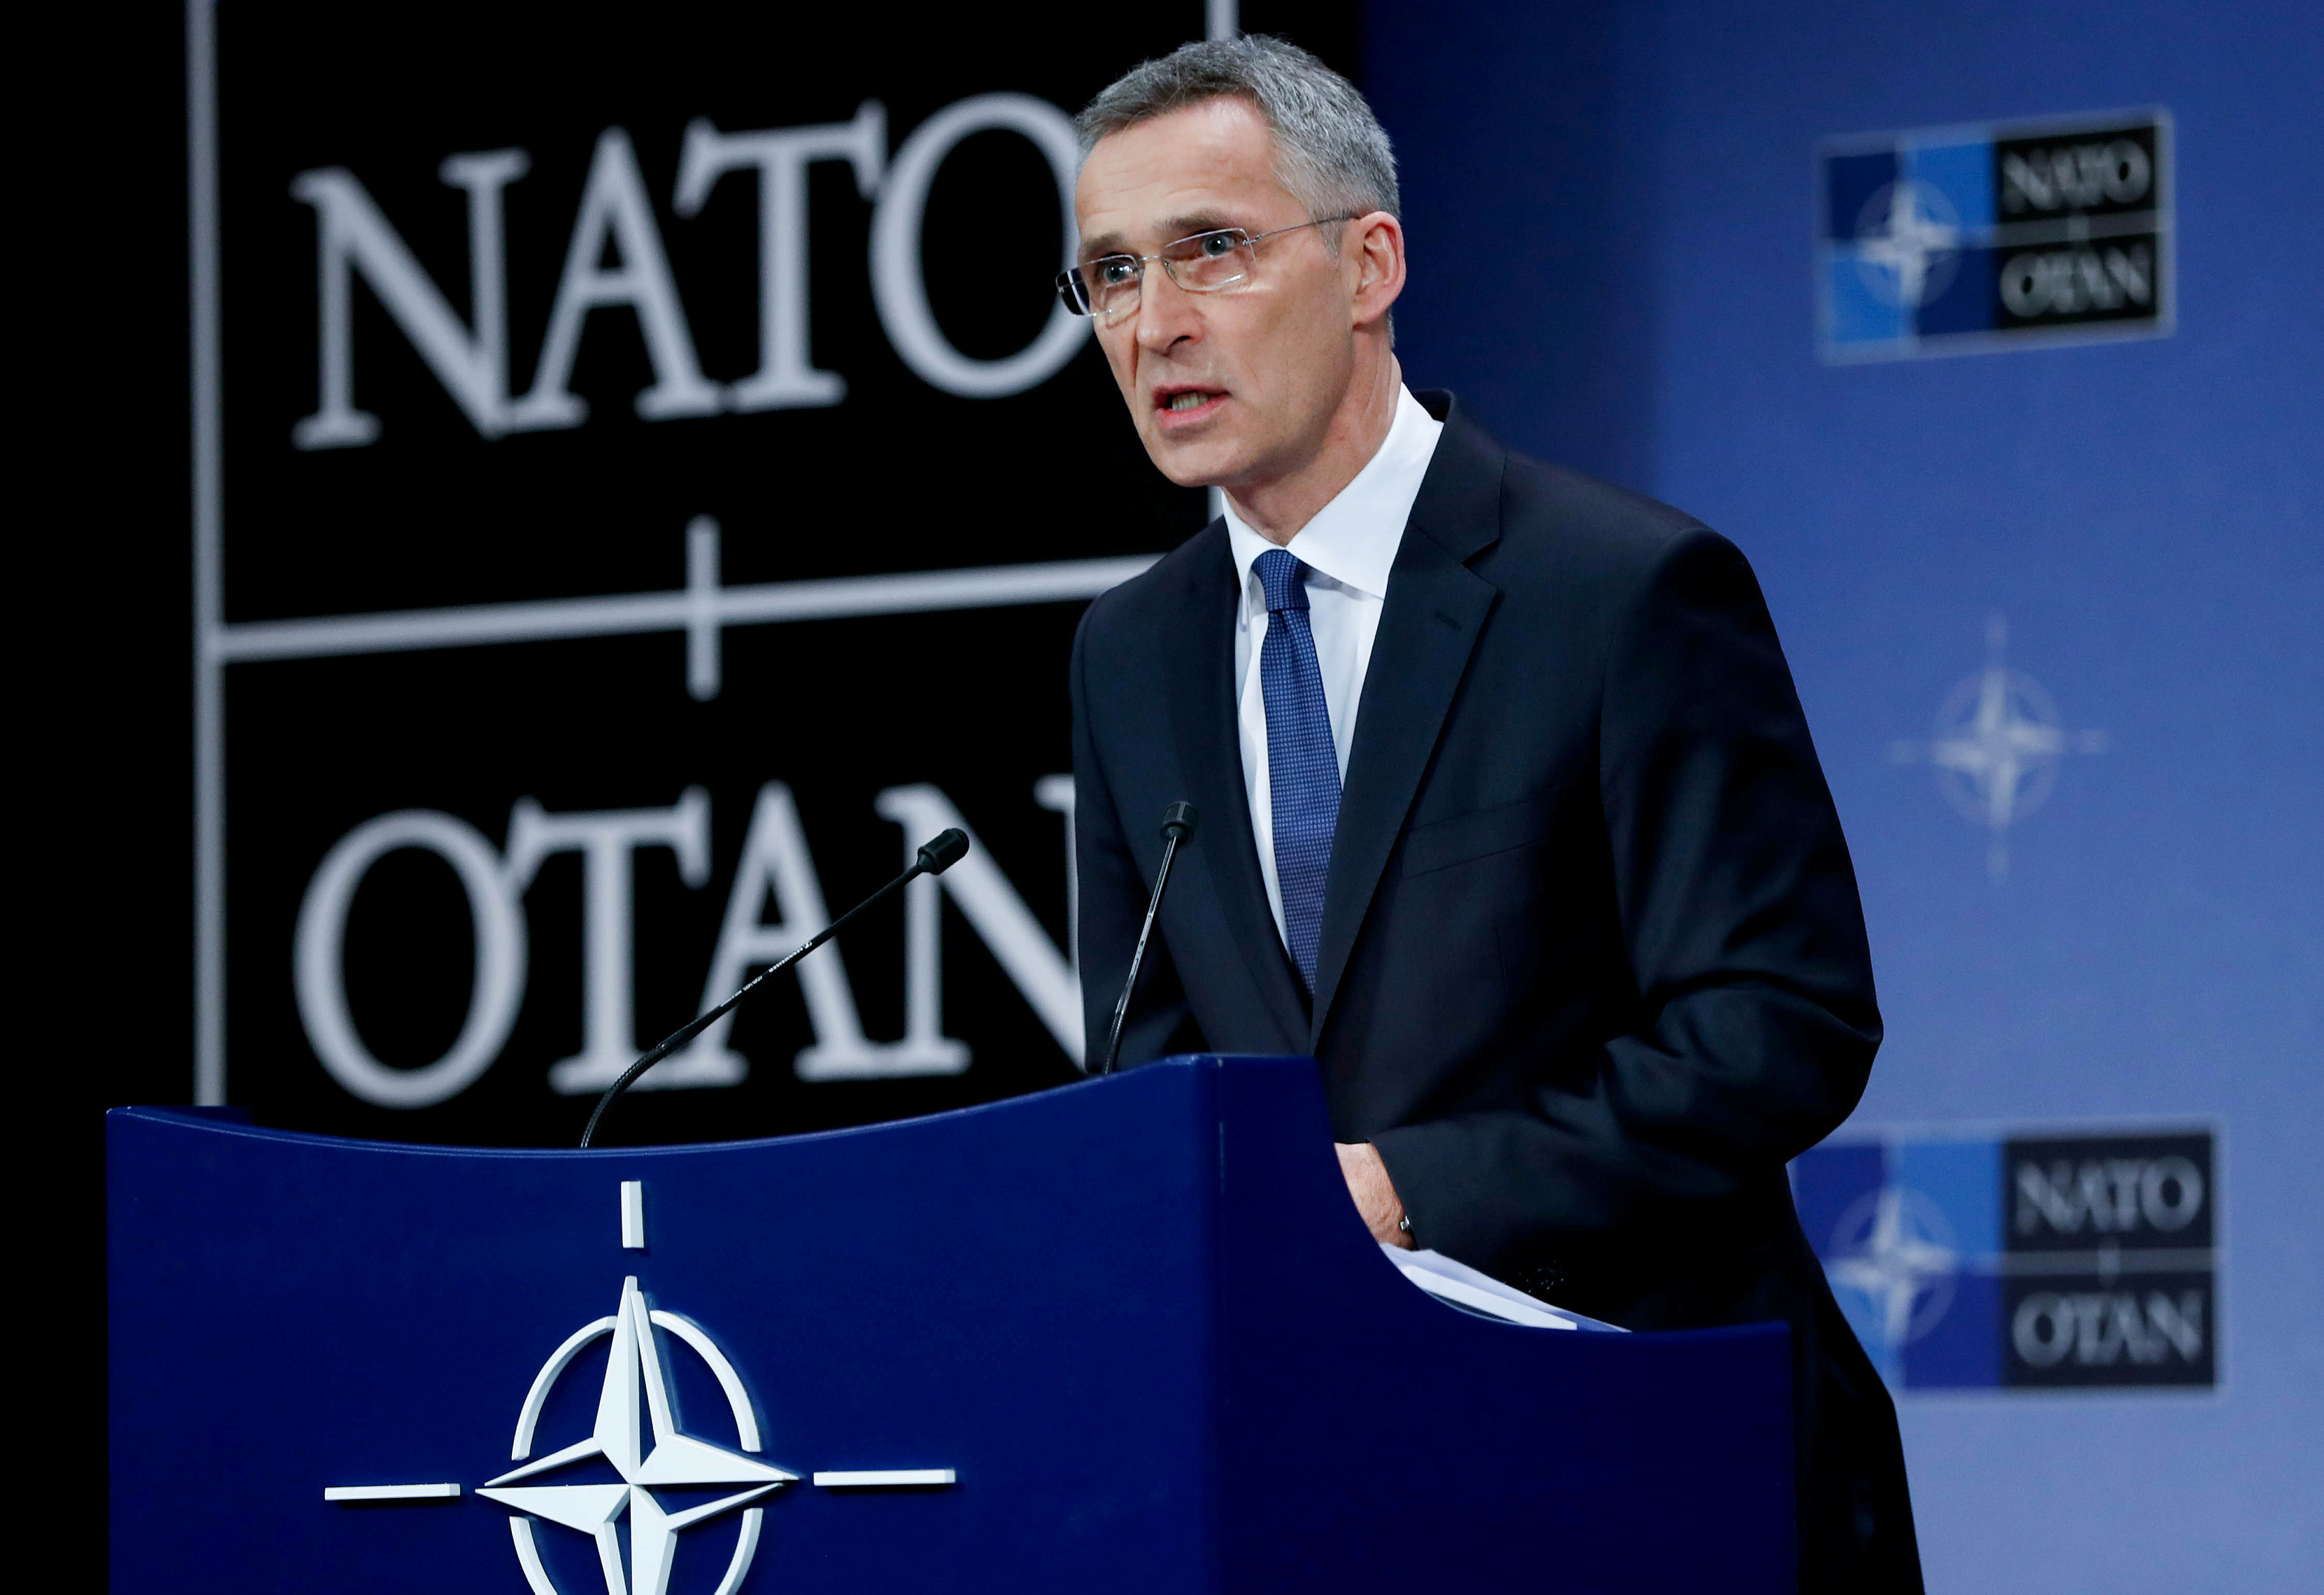 NATO Secretary-General Jens Stoltenberg addresses a news conference at the Alliance headquarters in Brussels, Belgium, March 15, 2018. REUTERS/Yves Herma